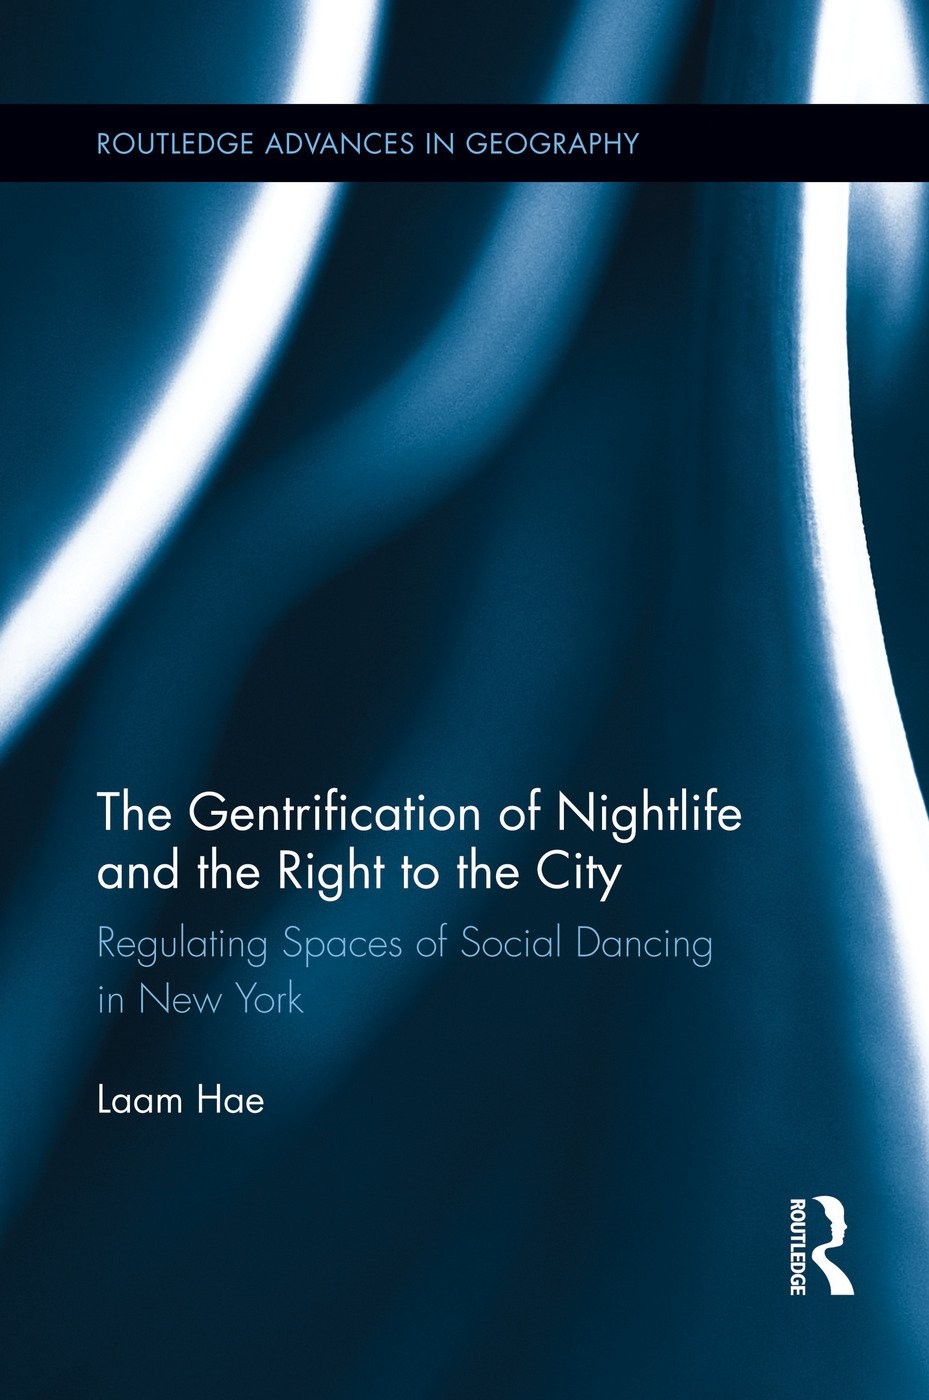 The Gentrification of Nightlife and the Right to the City: Regulating Spaces of Social Dancing in New York book cover